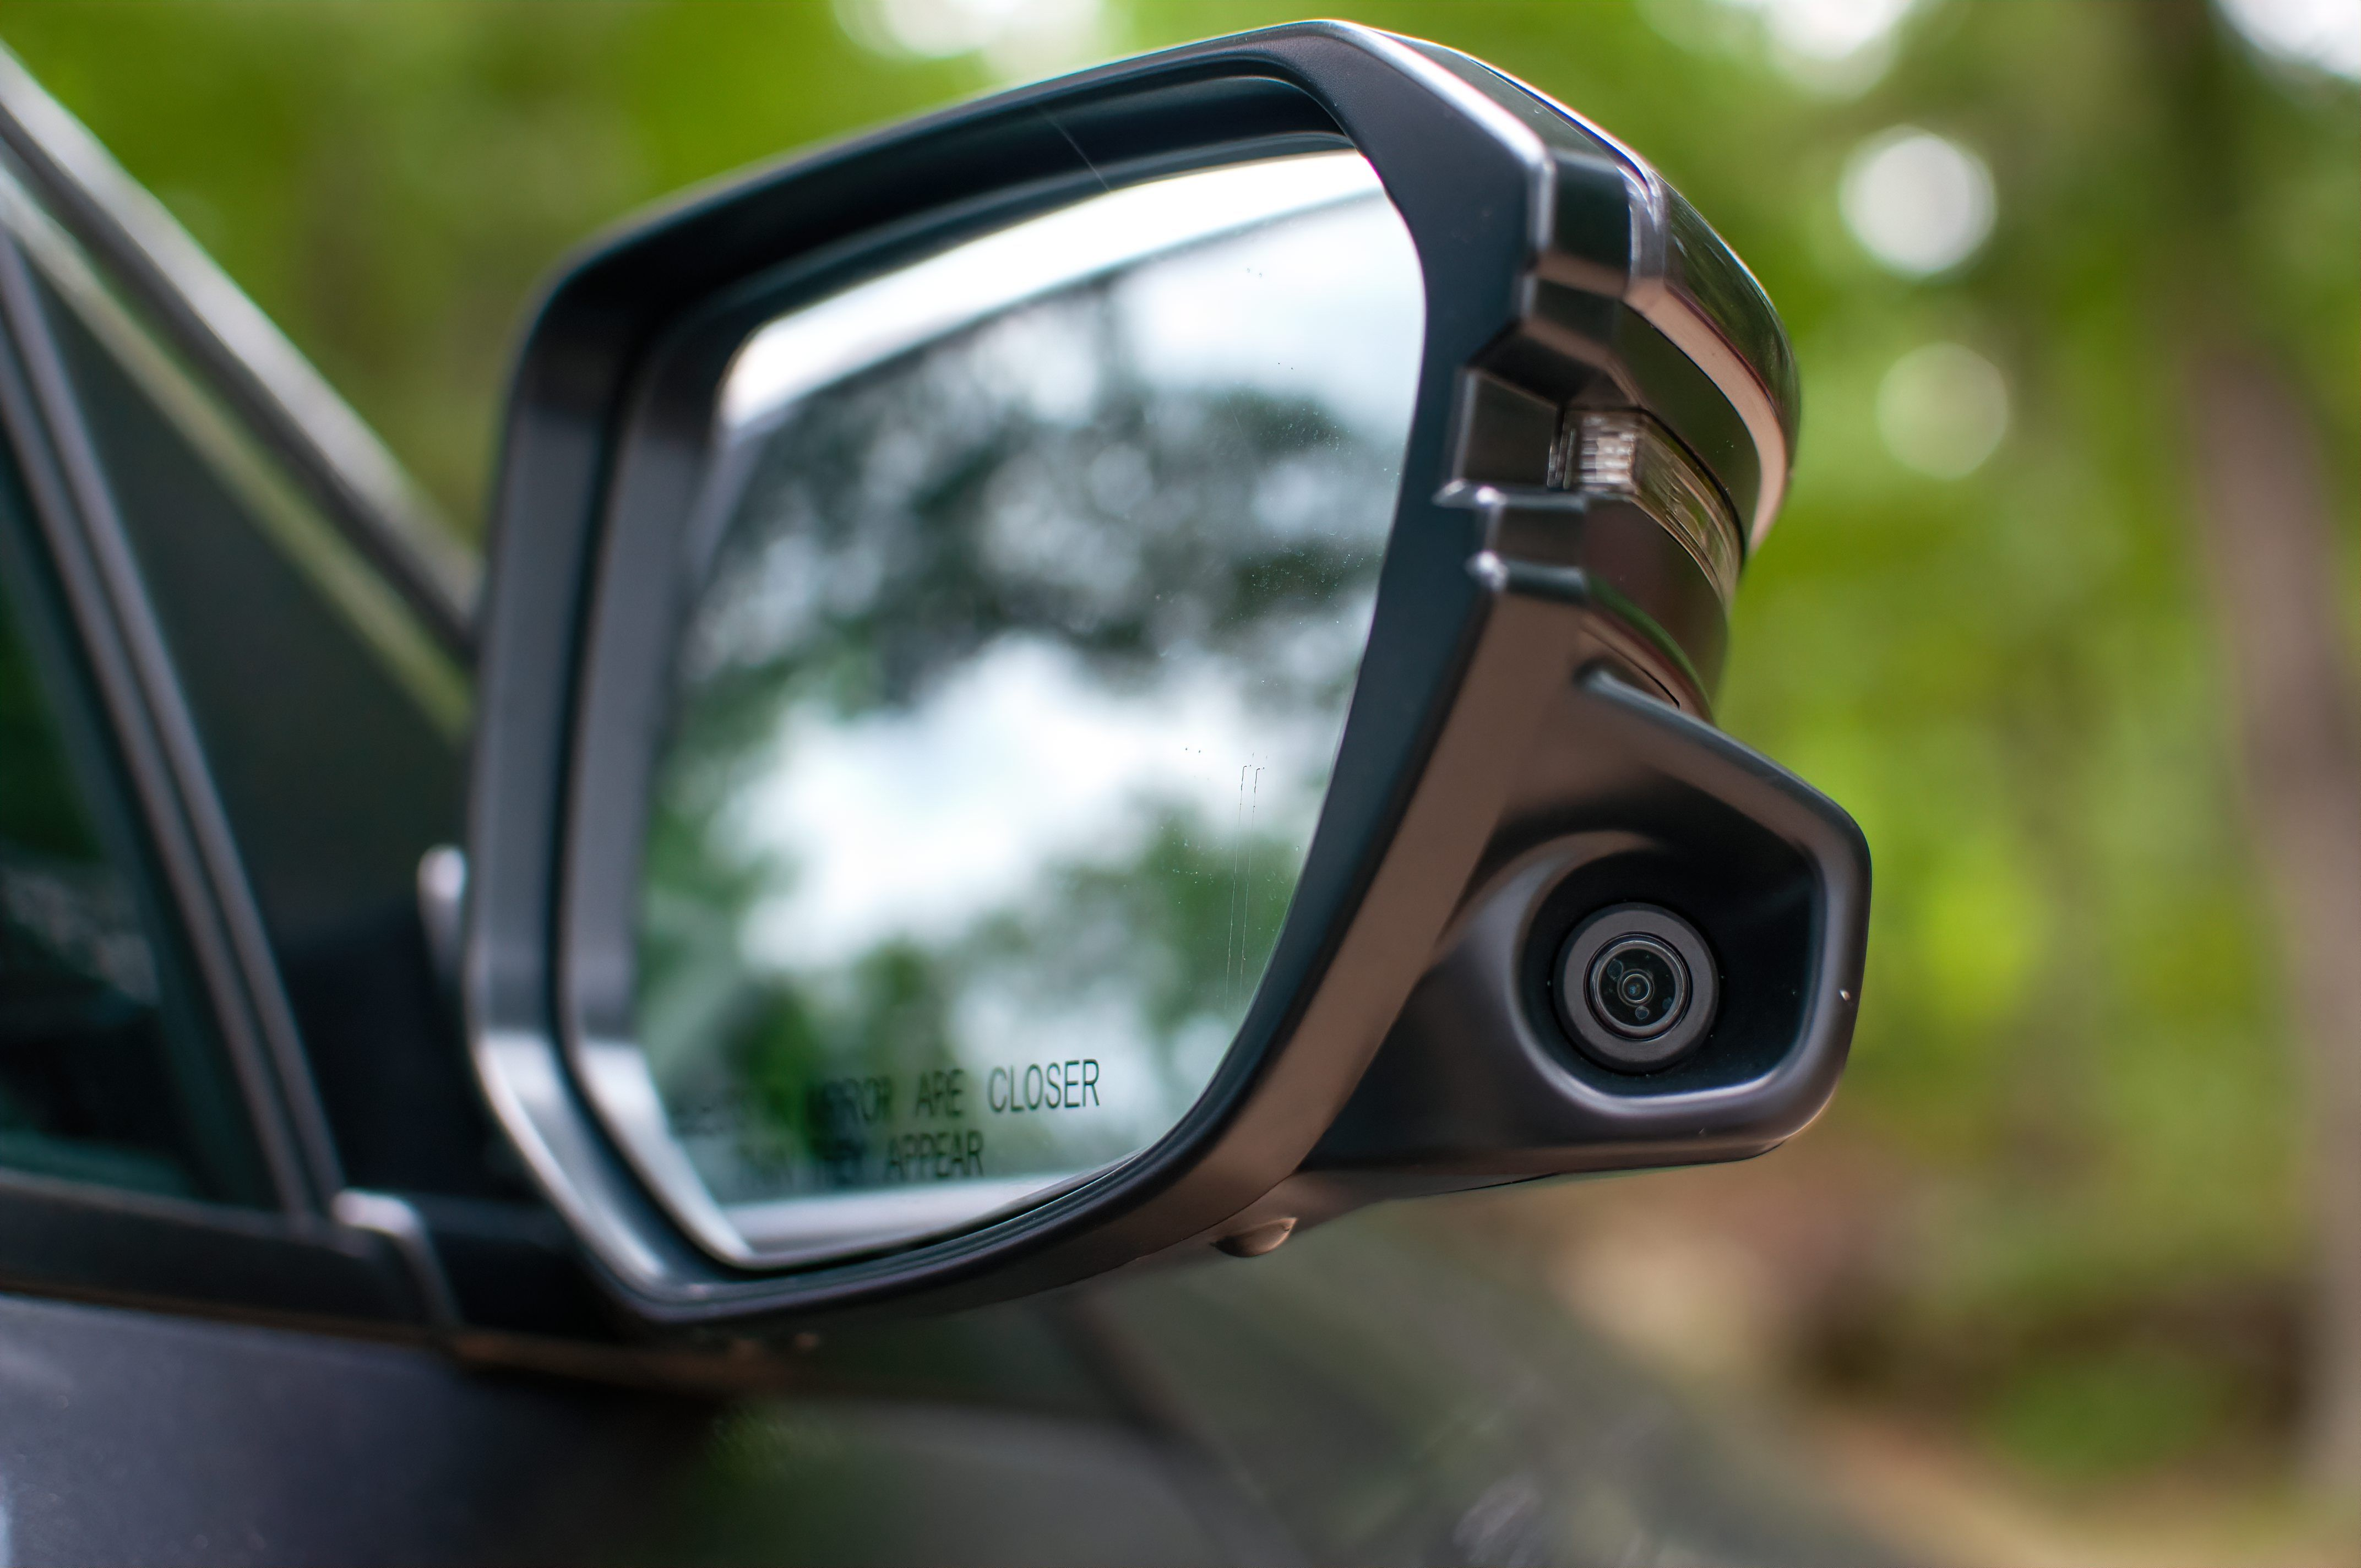 Honda Is Phasing Out Lanewatch In Favor Of Blind Spot Monitoring